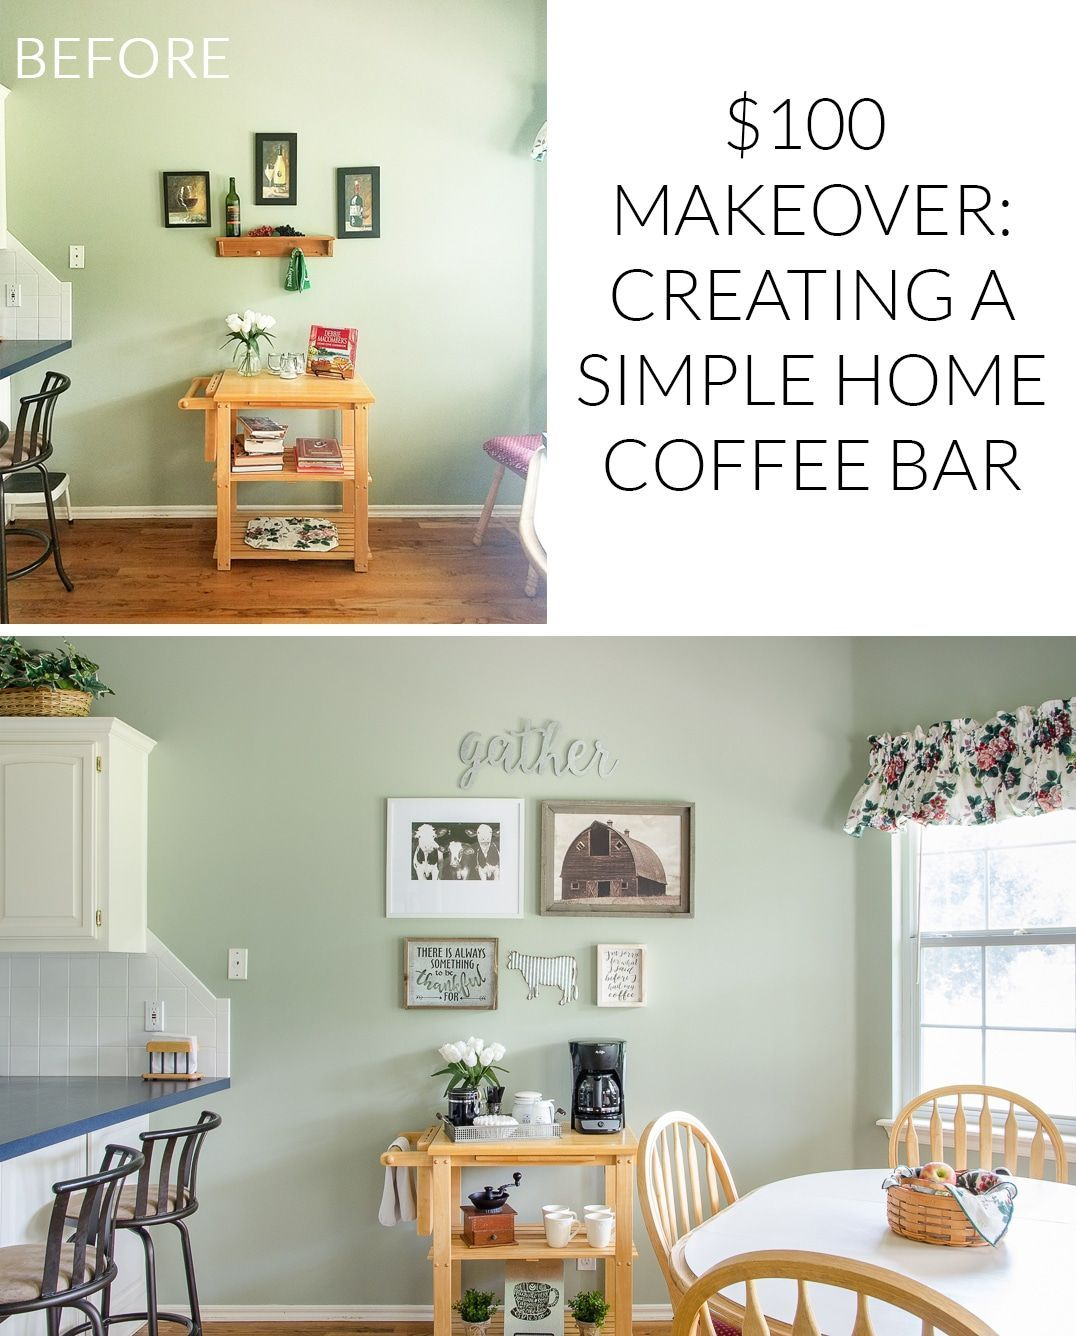 Tips for creating  simple home coffee bar on budget homedecoratingtipsforabudget also rh pinterest